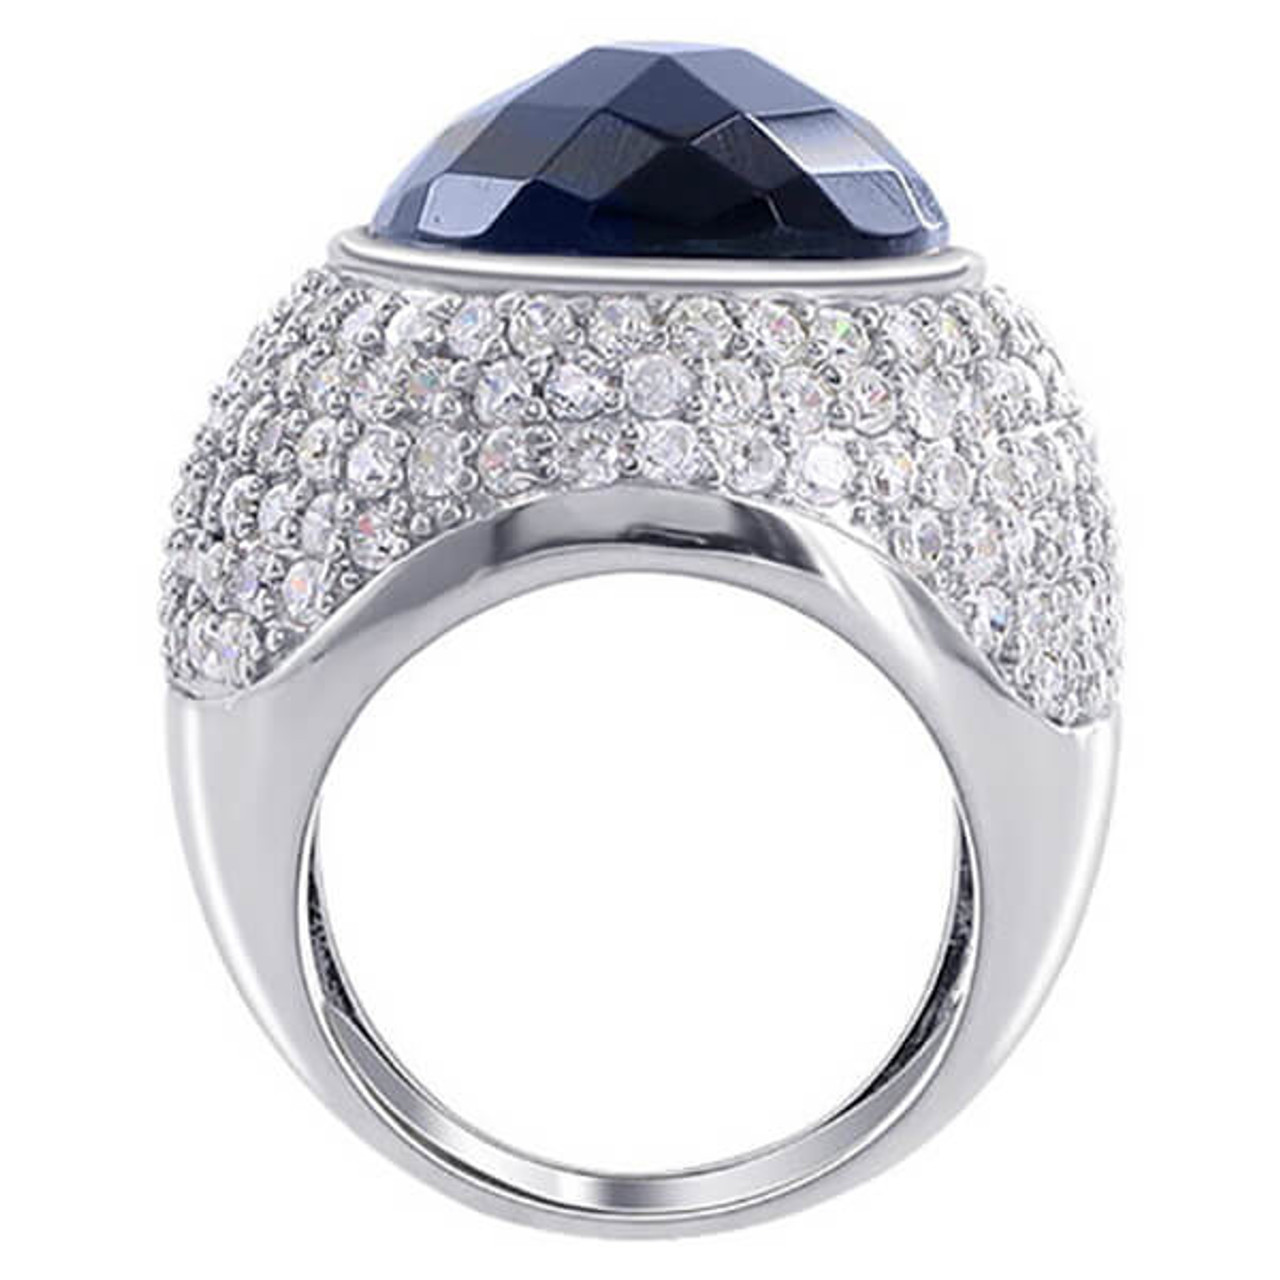 925 Silver Oval Black Faceted Cubic Zirconia Cocktail Ring